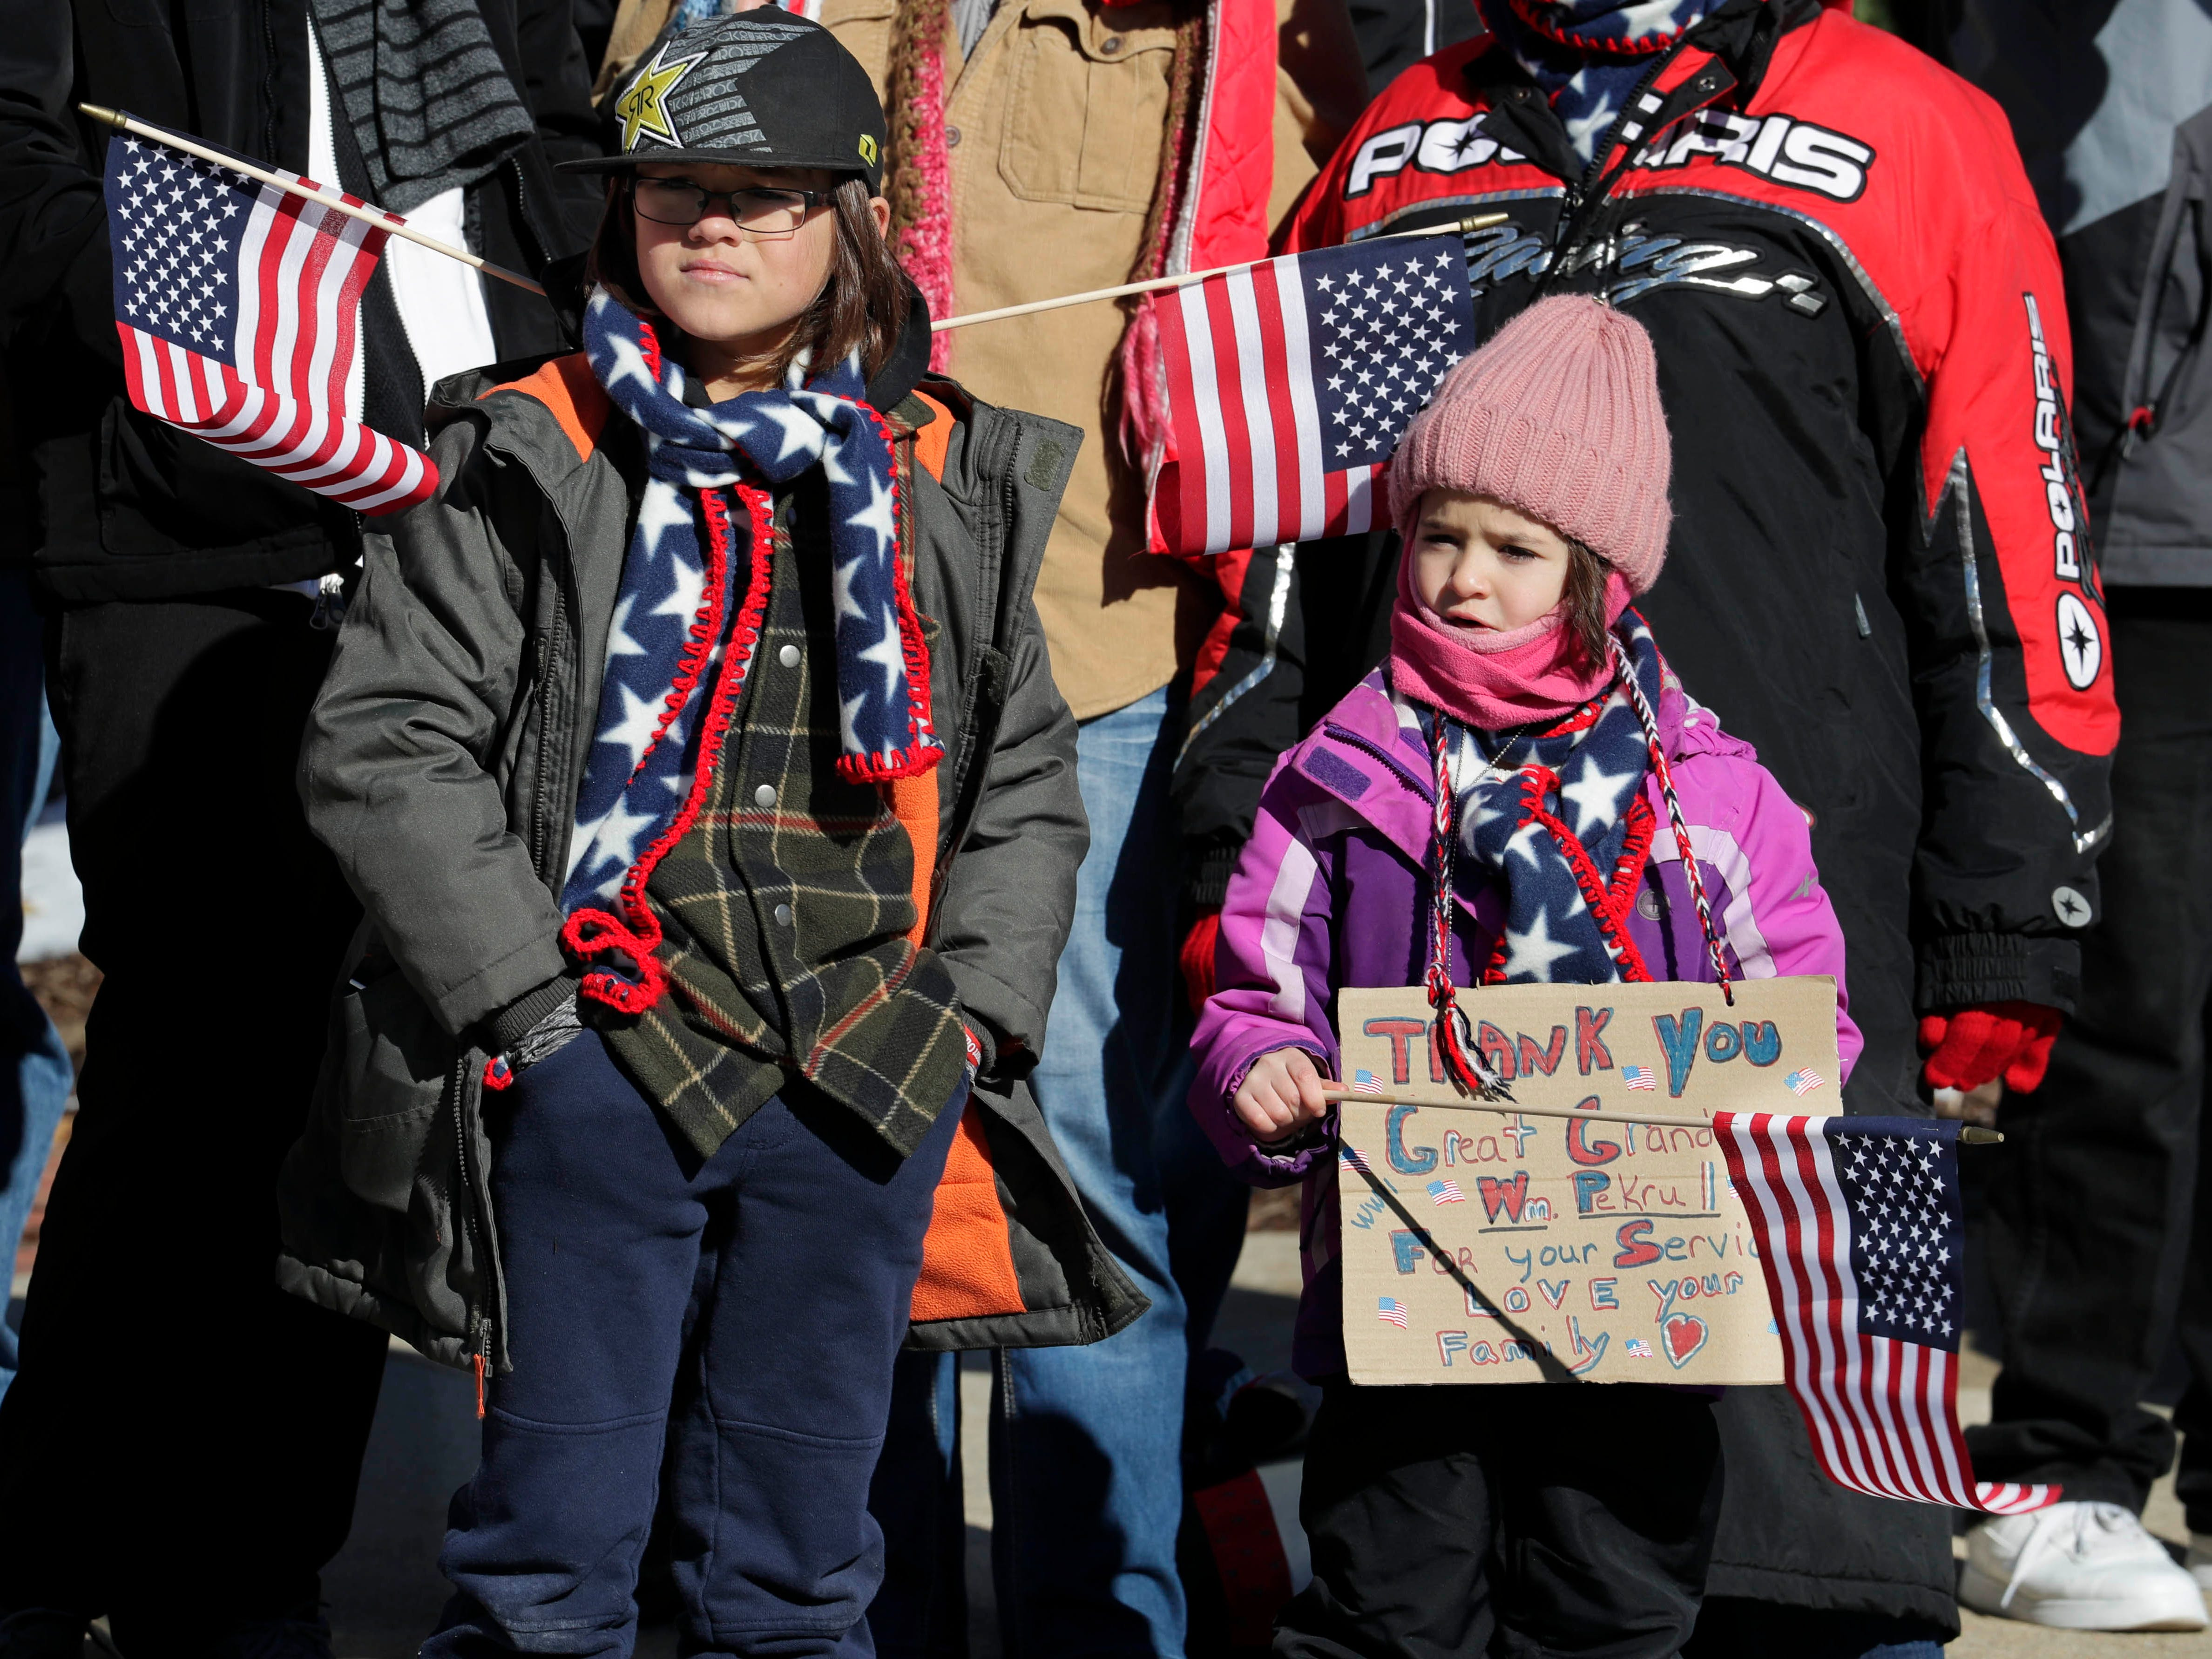 Henry Labarge, 11, and Ella Lein, 6, show their support for veterans as they braved cold temperatures to watch the Milwaukee Veterans Day parade Saturday.